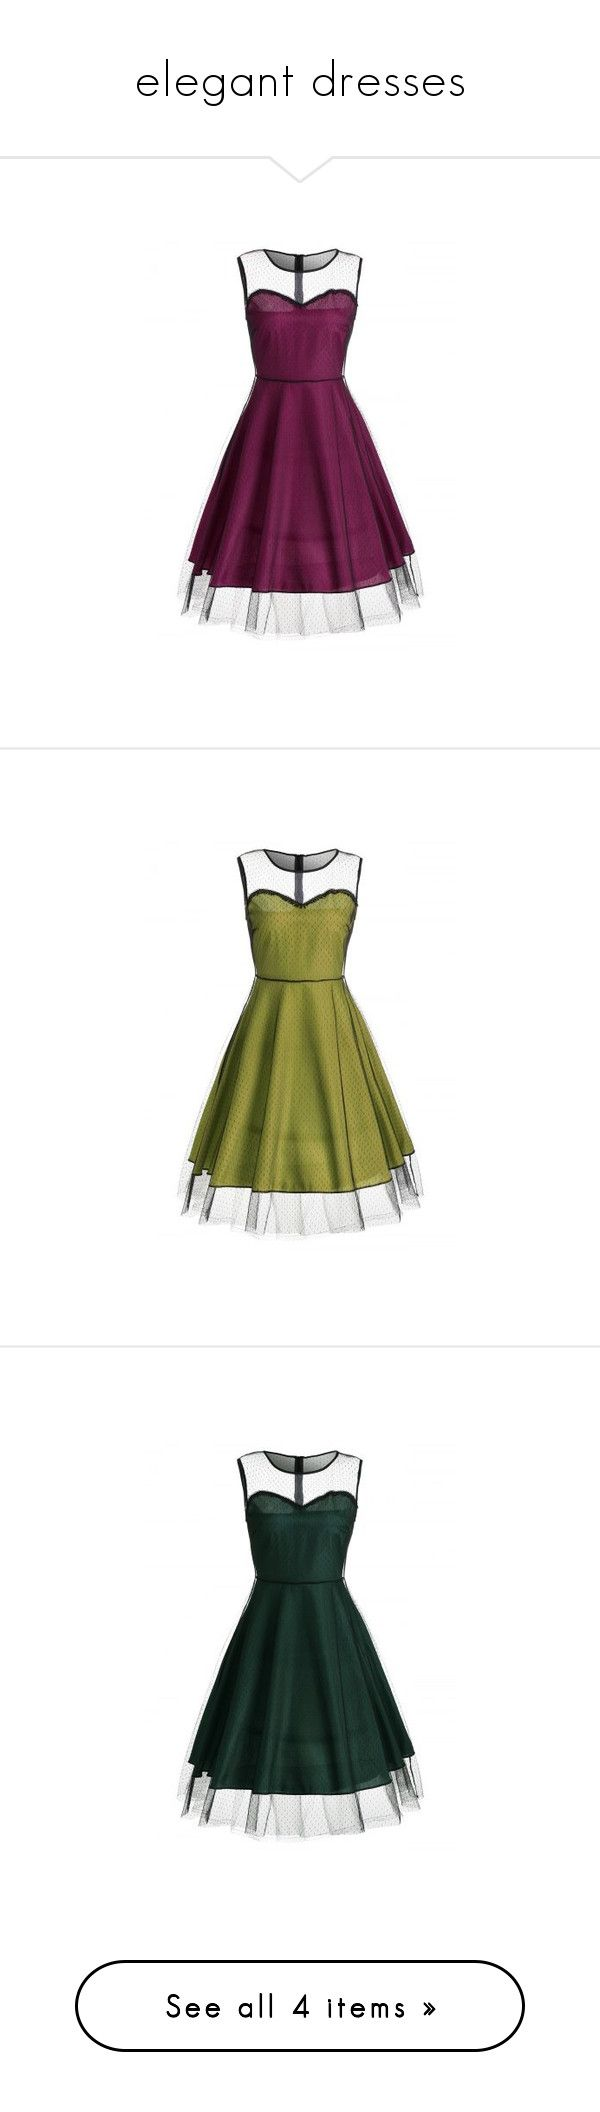 """""""elegant dresses"""" by rousou ❤ liked on Polyvore featuring dresses"""